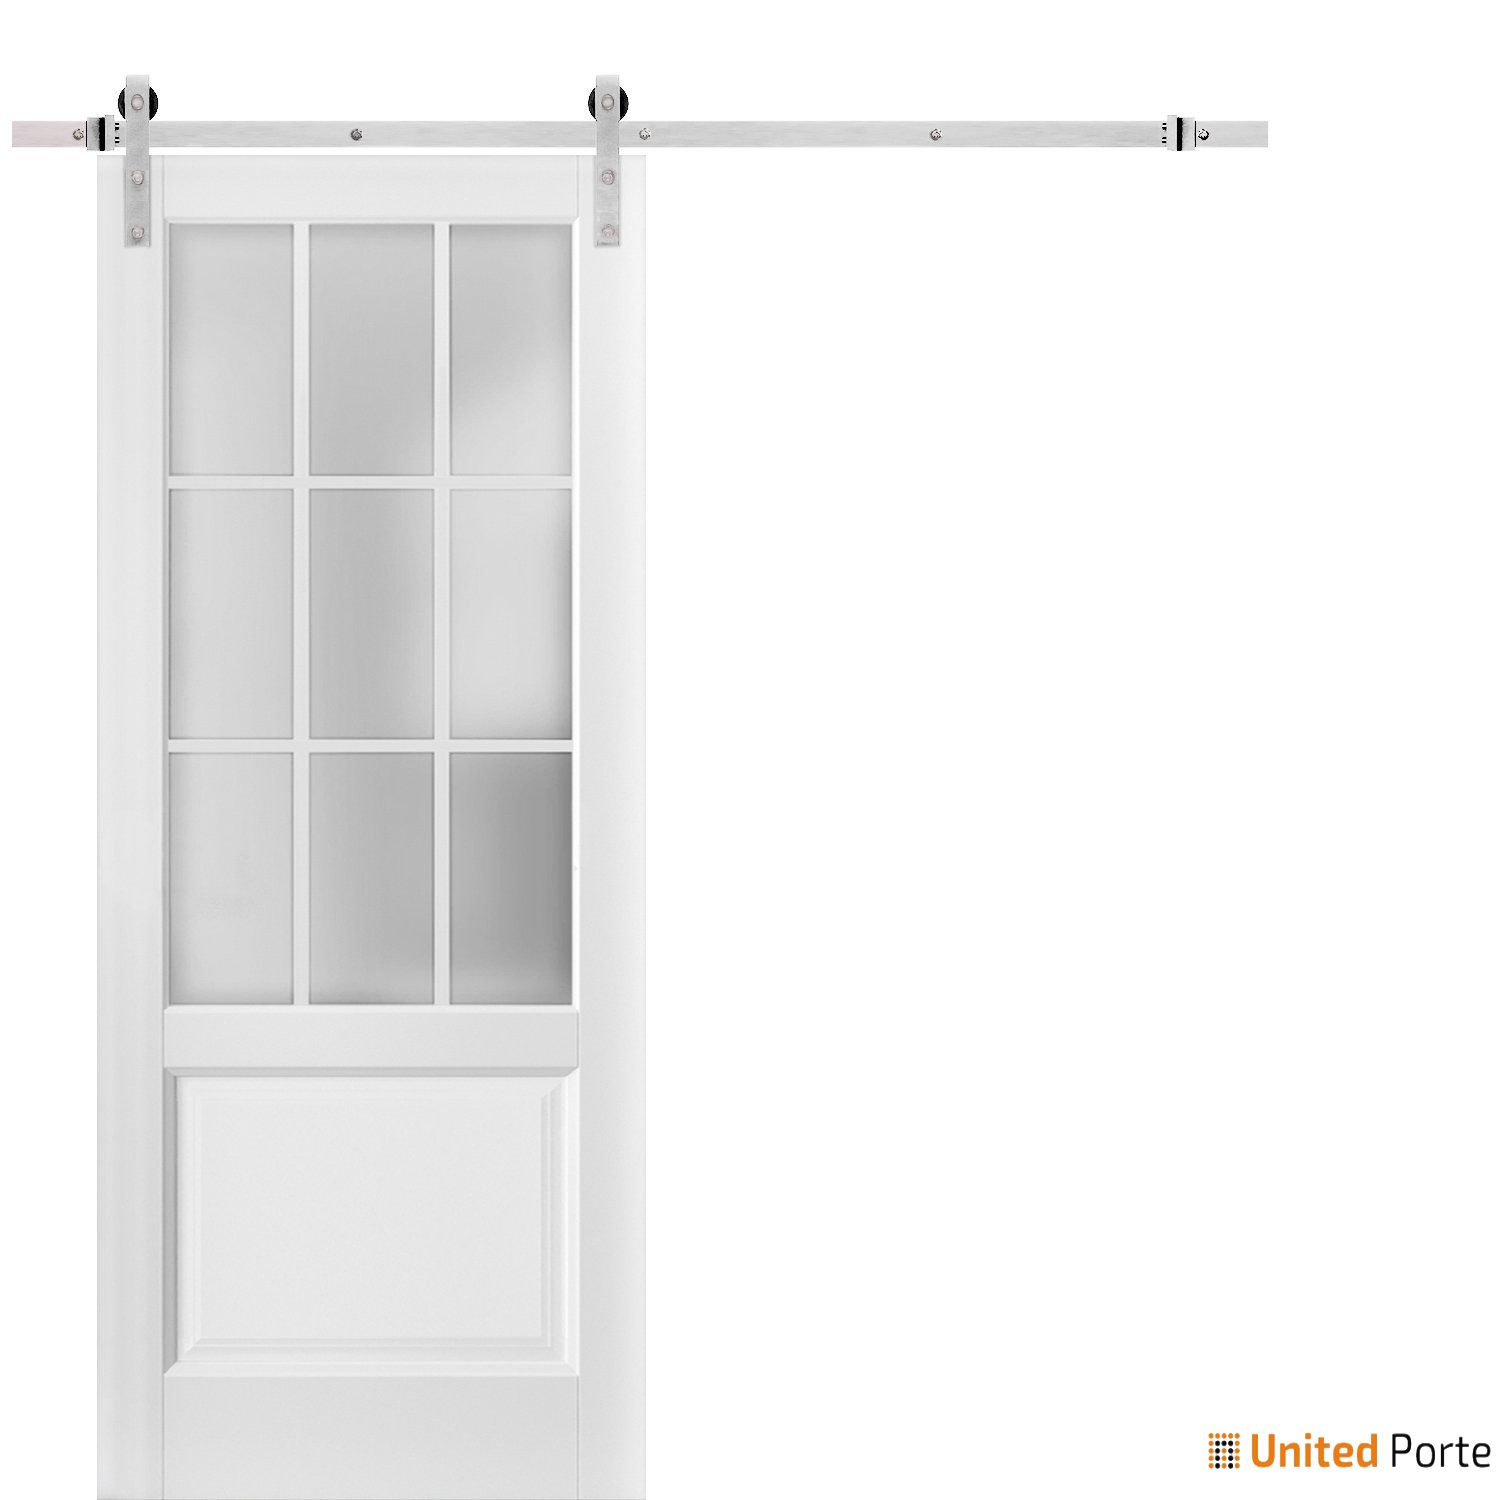 Felicia 3309 Matte White Sturdy Barn Door Frosted Glass 9 Lites with Stainless Hardware | Solid Panel Interior Barn Doors